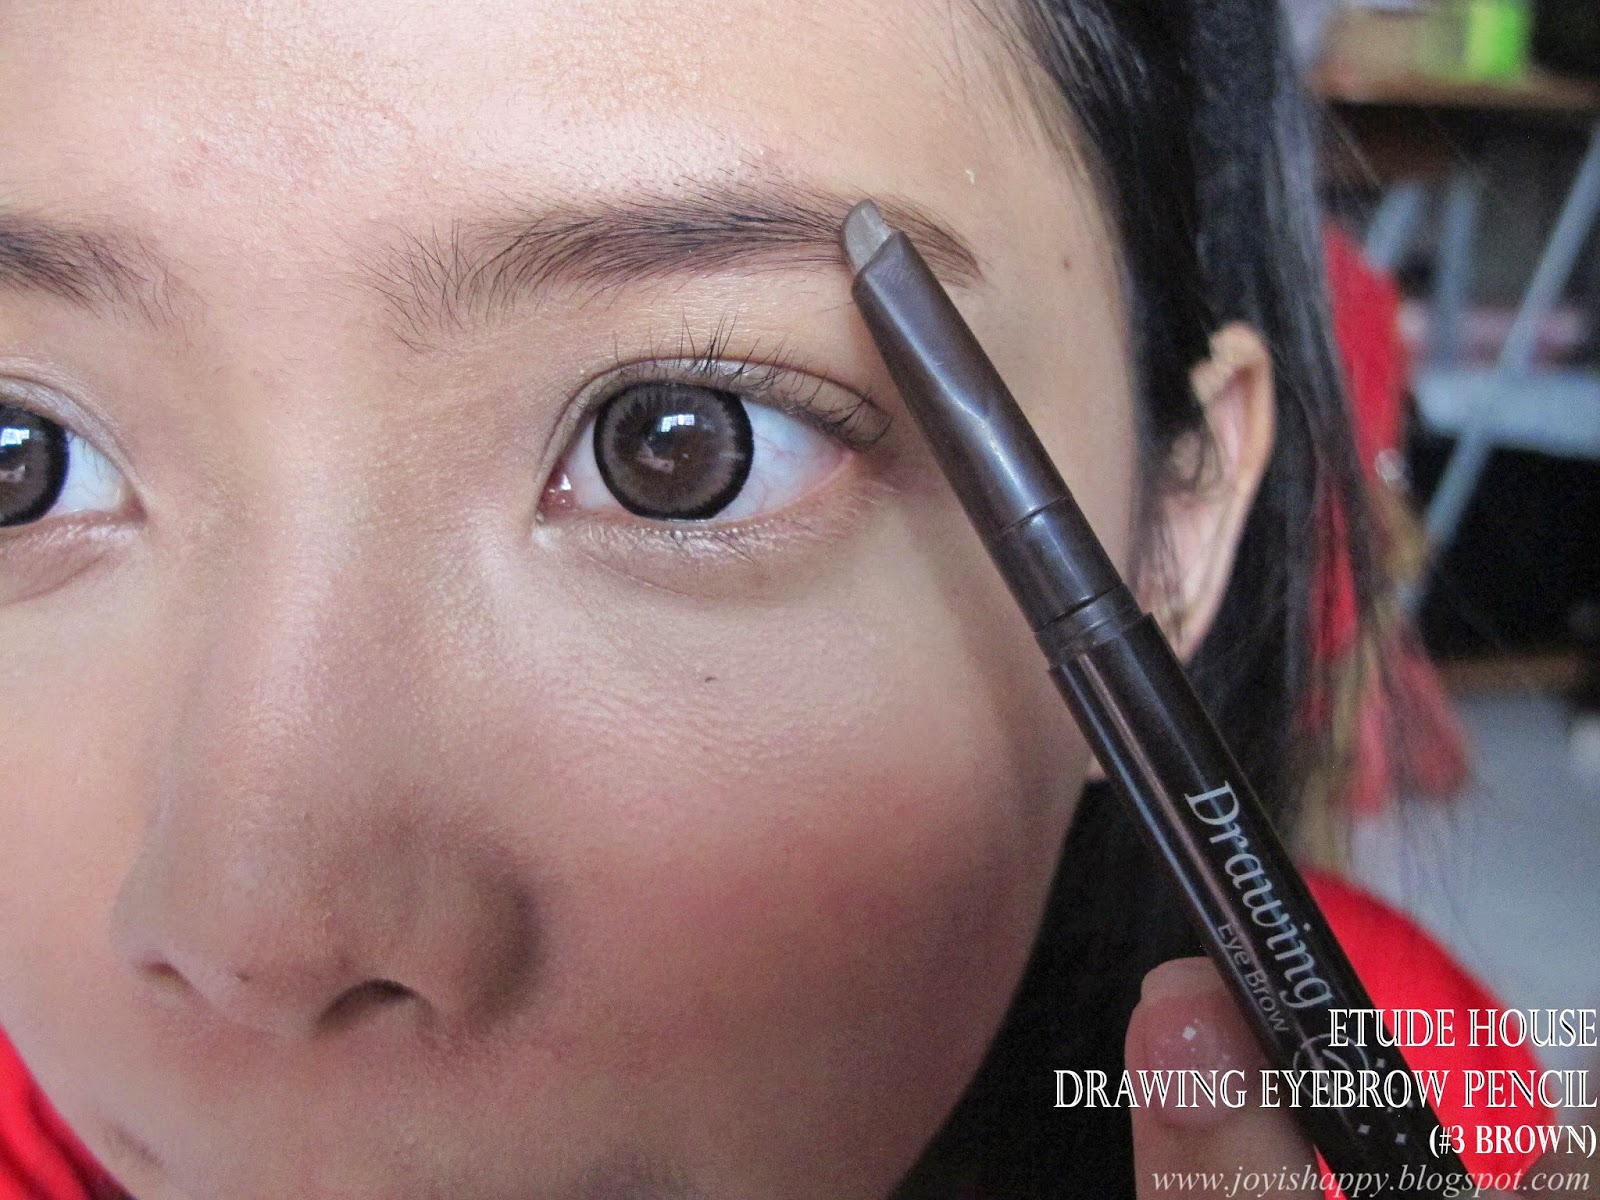 etude house AD drawing eyebrow pencil #3 brown